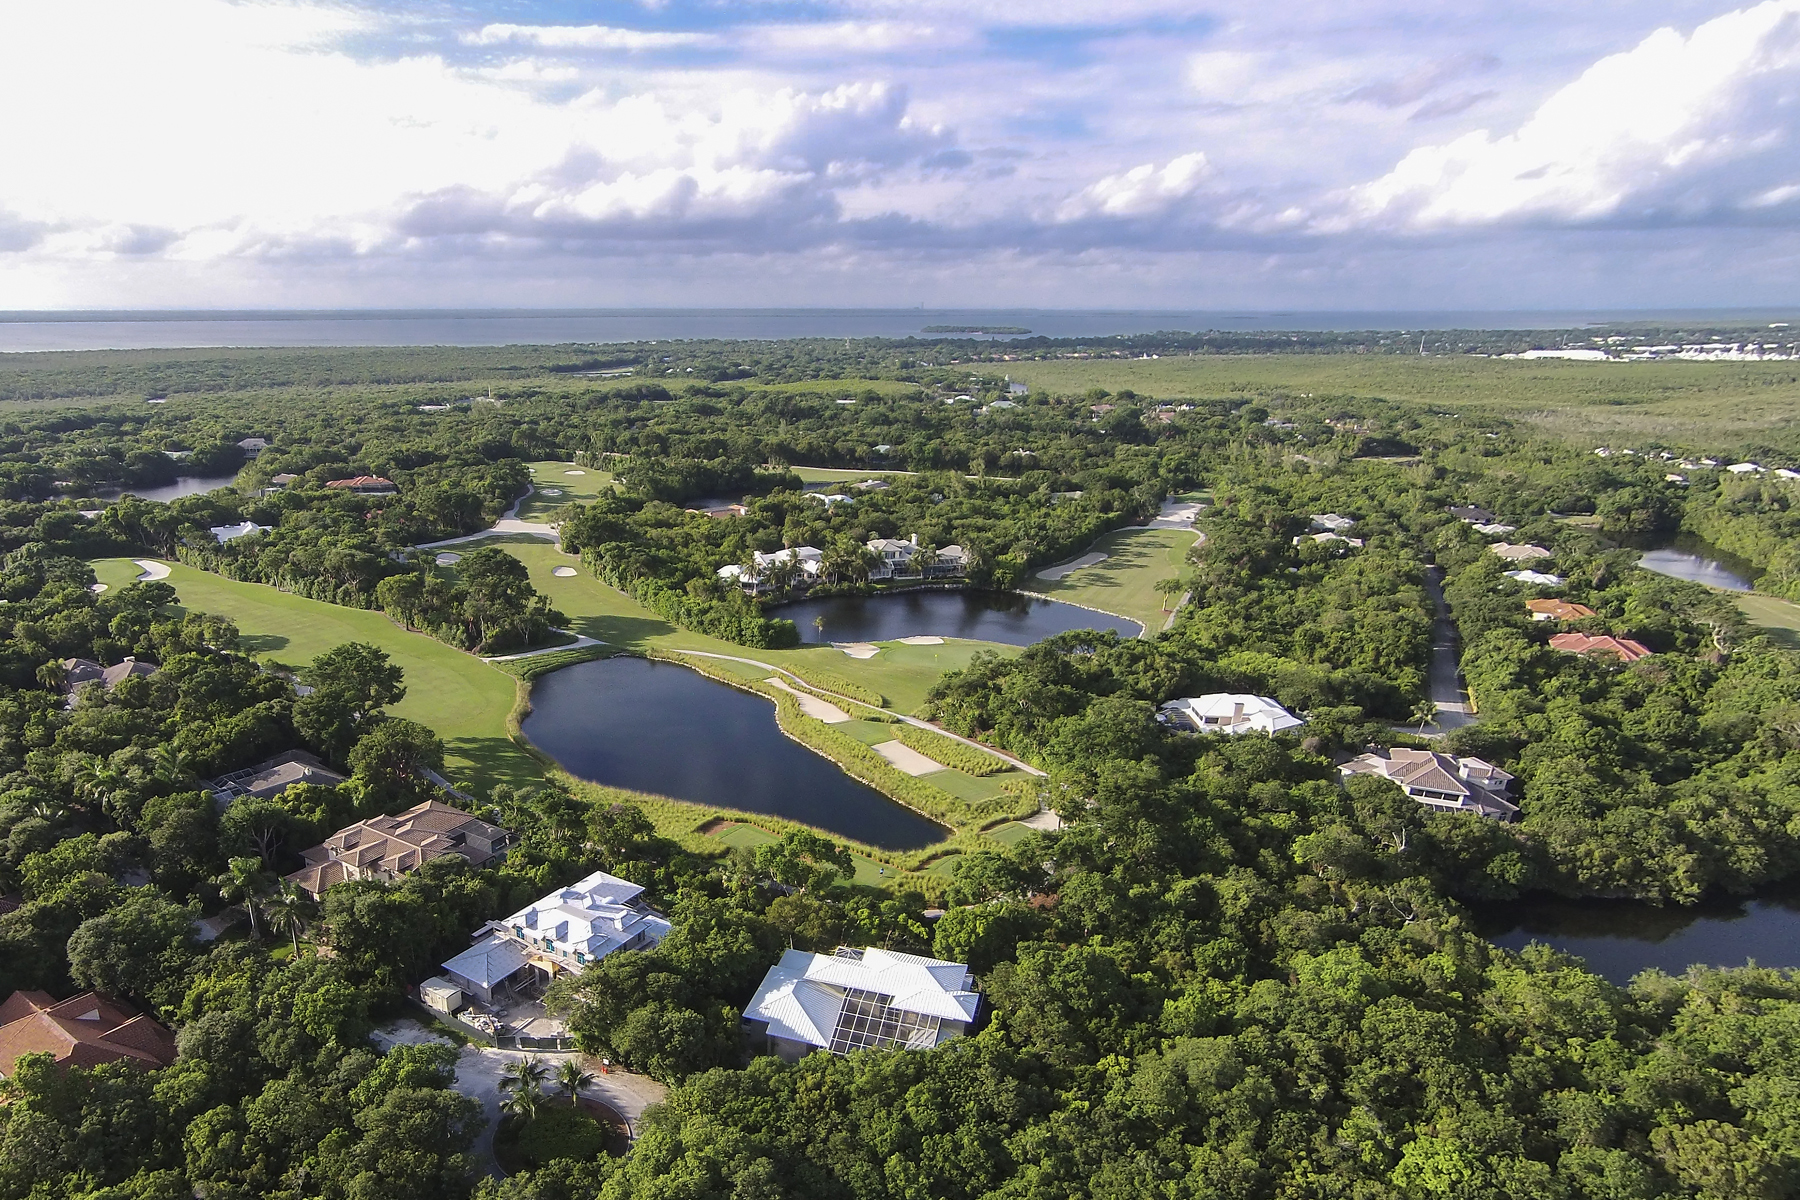 Tek Ailelik Ev için Satış at Panoramic Golf and Lake Views at Ocean Reef 437 South Harbor Drive Key Largo, Florida 33037 Amerika Birleşik Devletleri